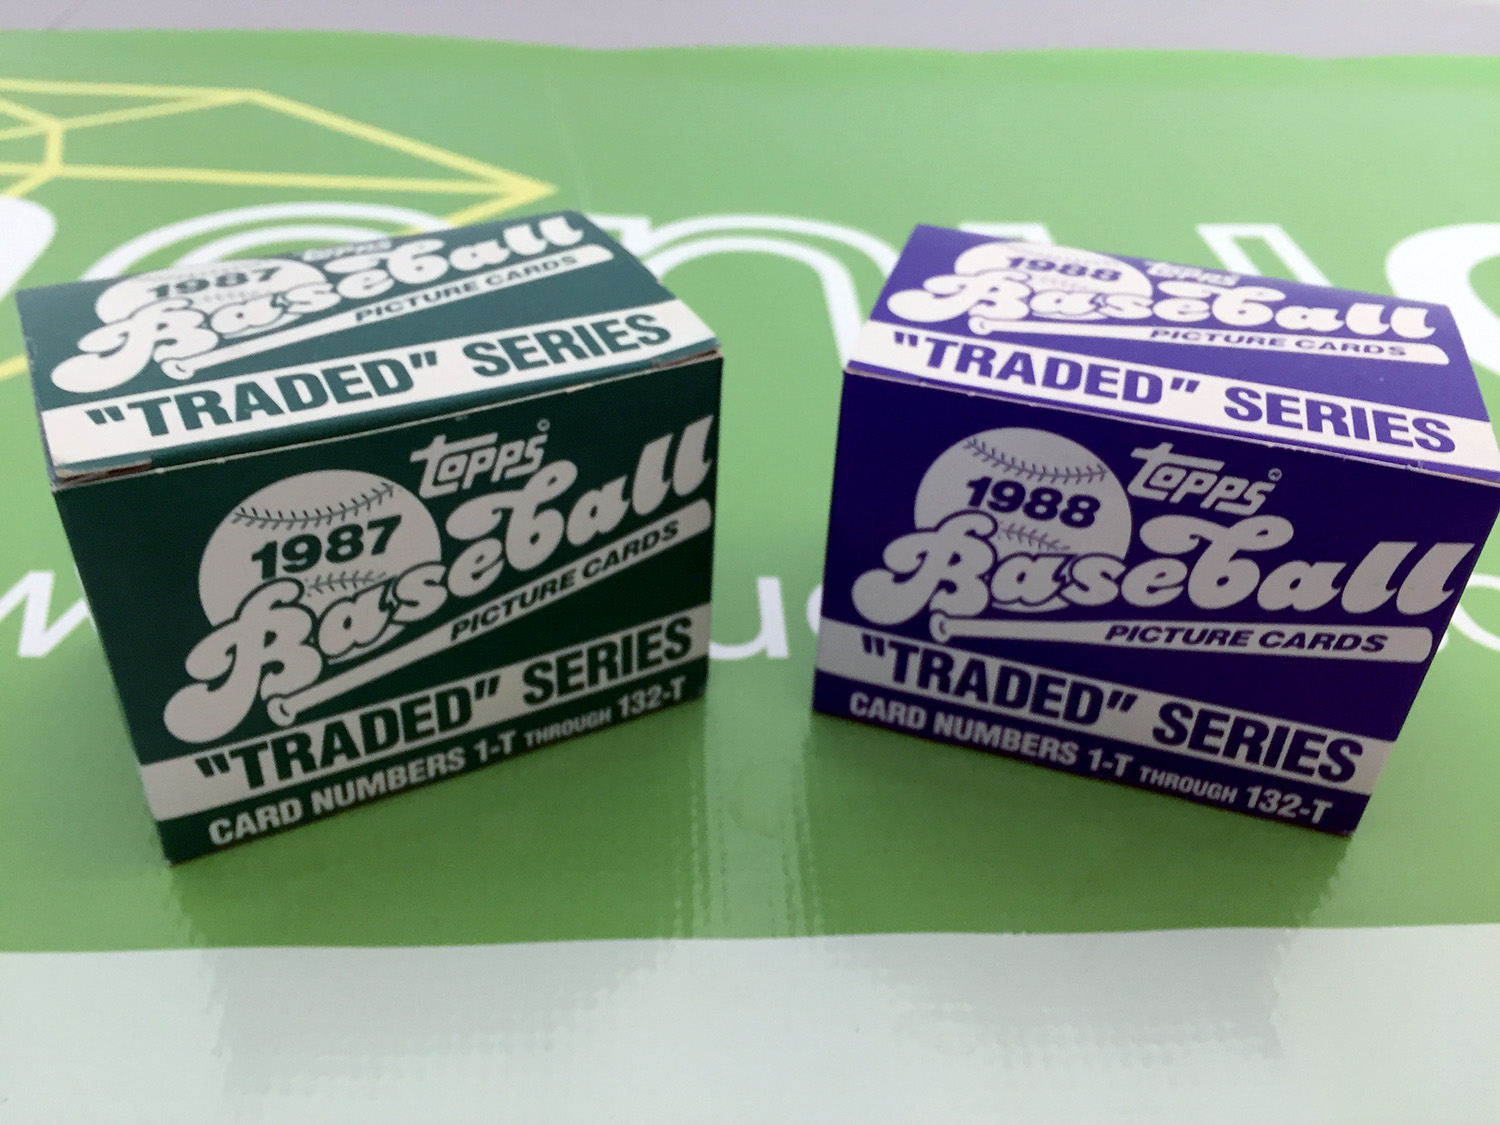 1987 and 1988 Topps Traded Sets [SEE VIDEO]